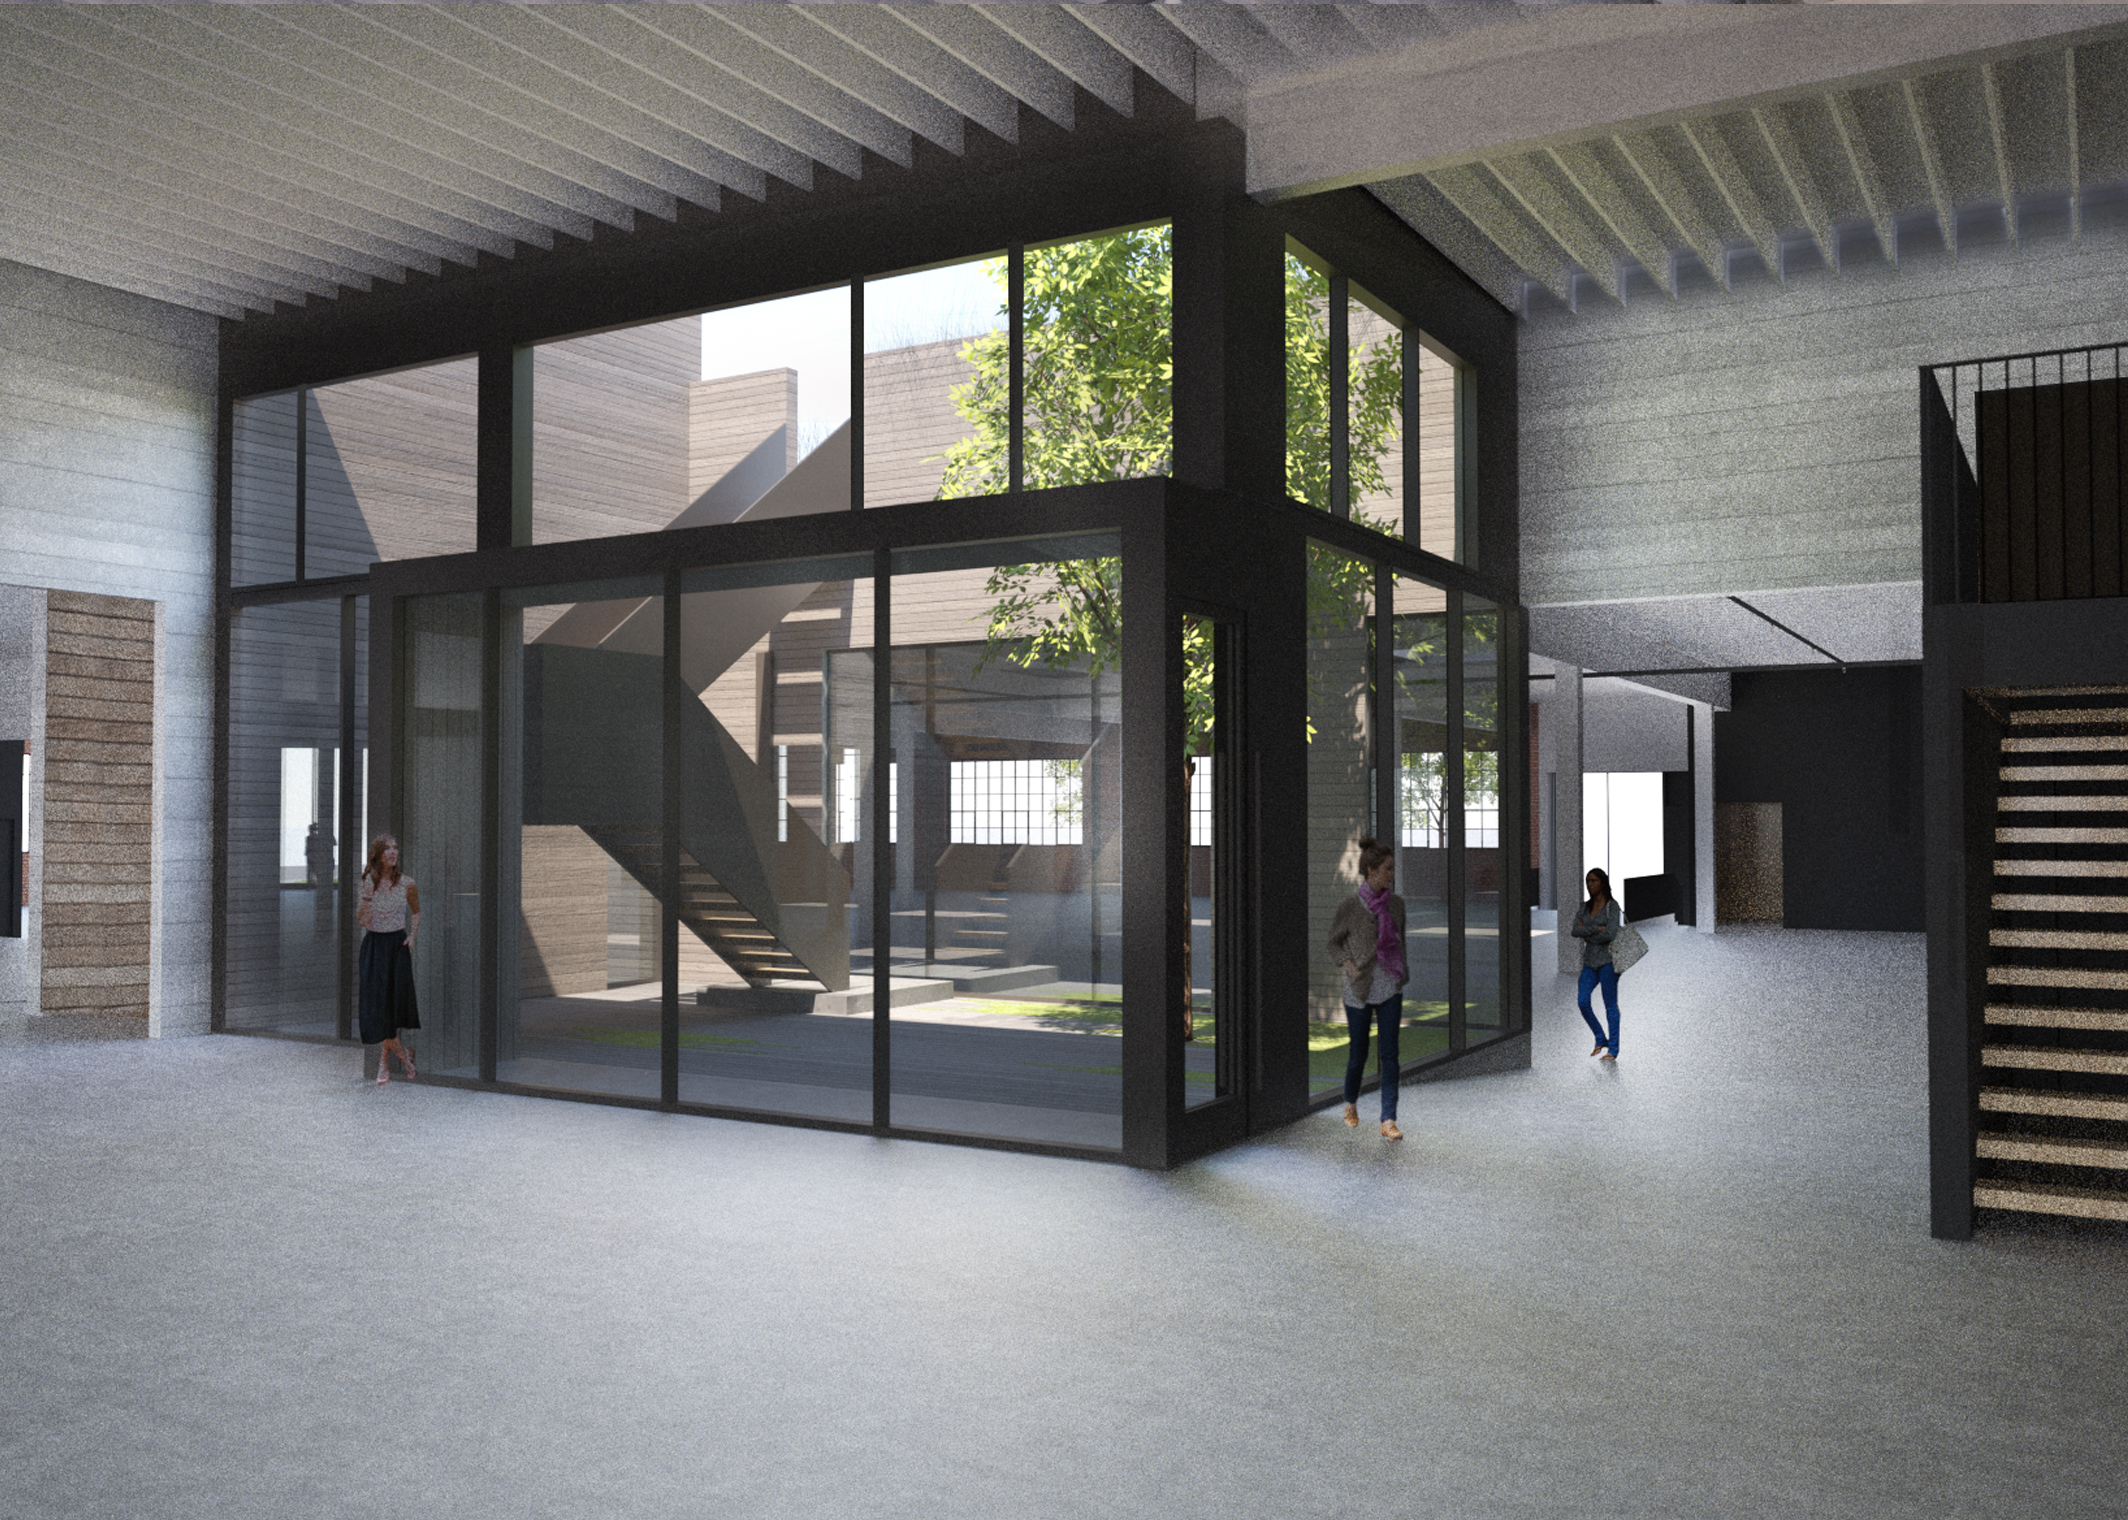 rendering, inner courtyard of office building with tree and stairs to roof top